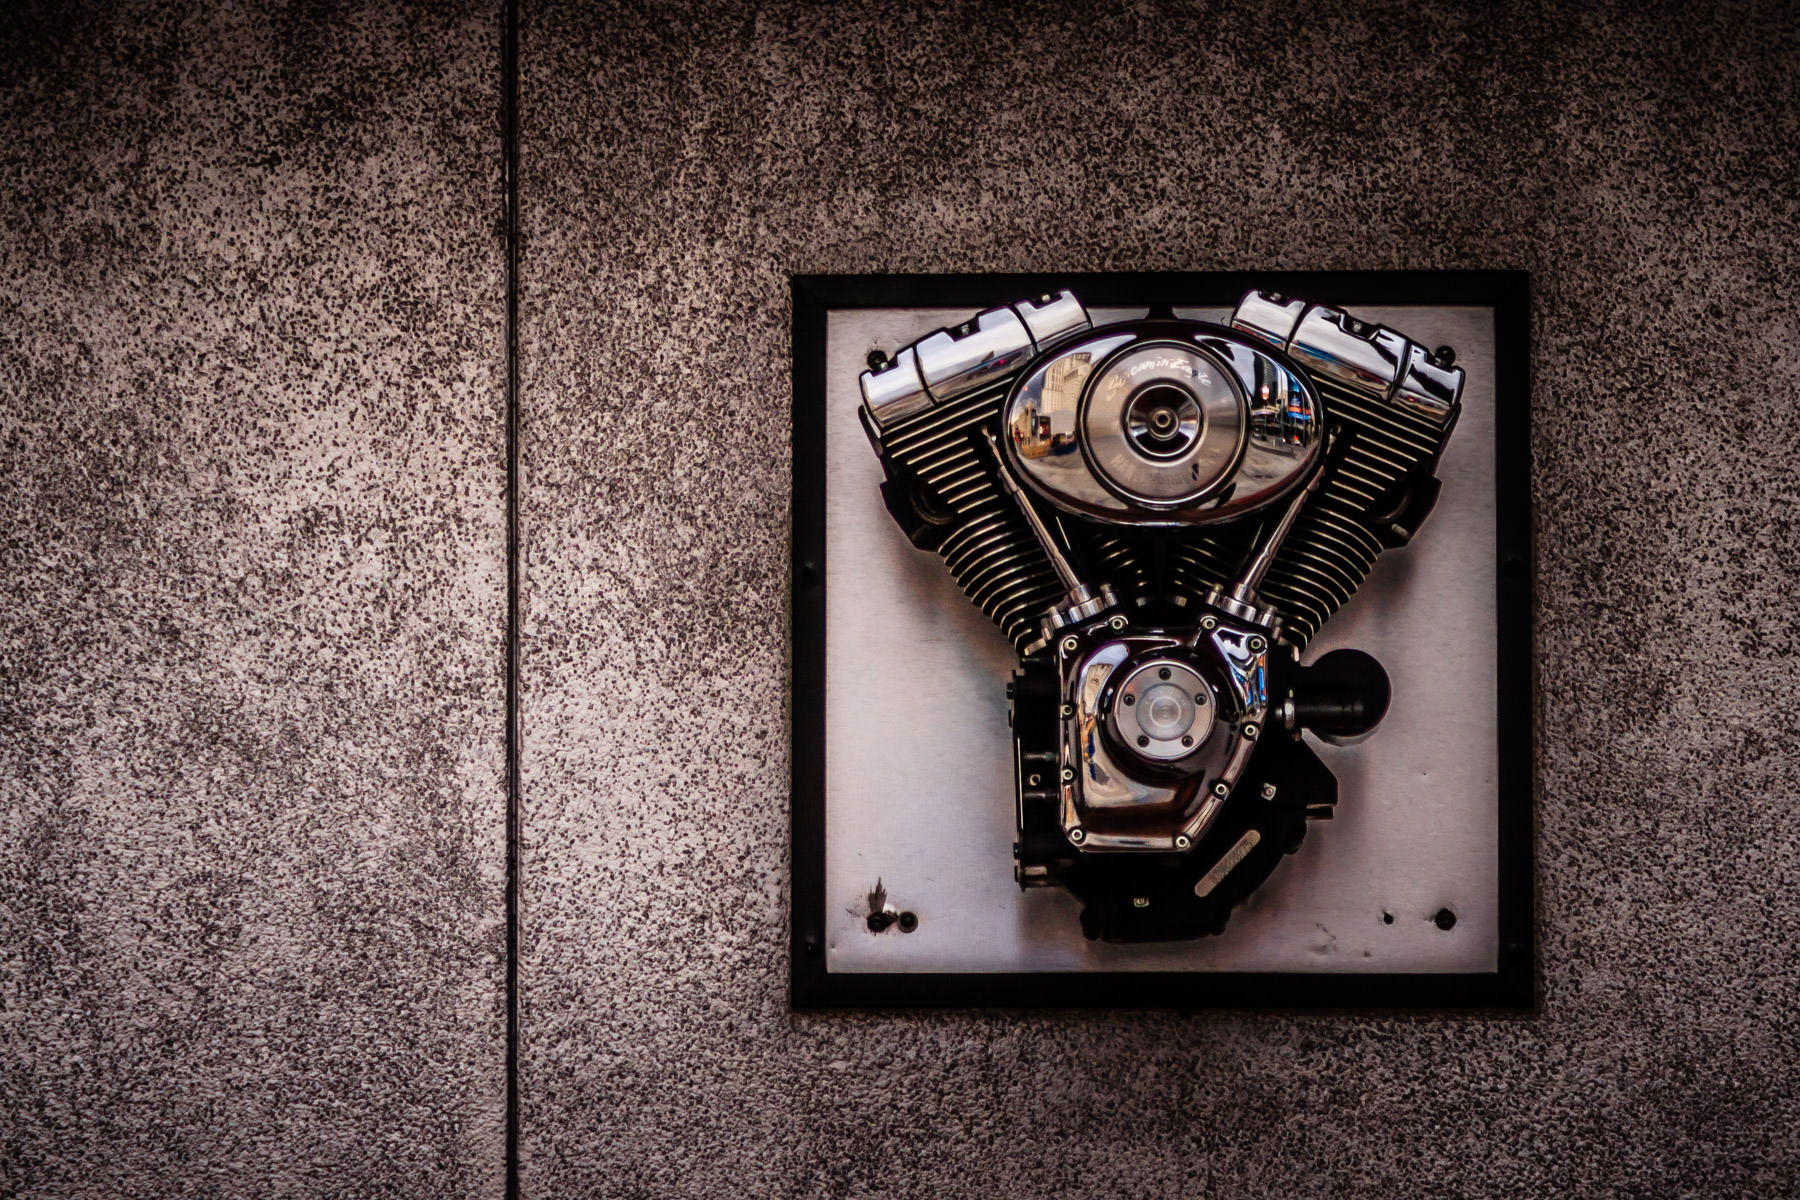 A V-Twin motorcycle engine mounted on a wall outside of the Harley-Davidson Cafe in Las Vegas.